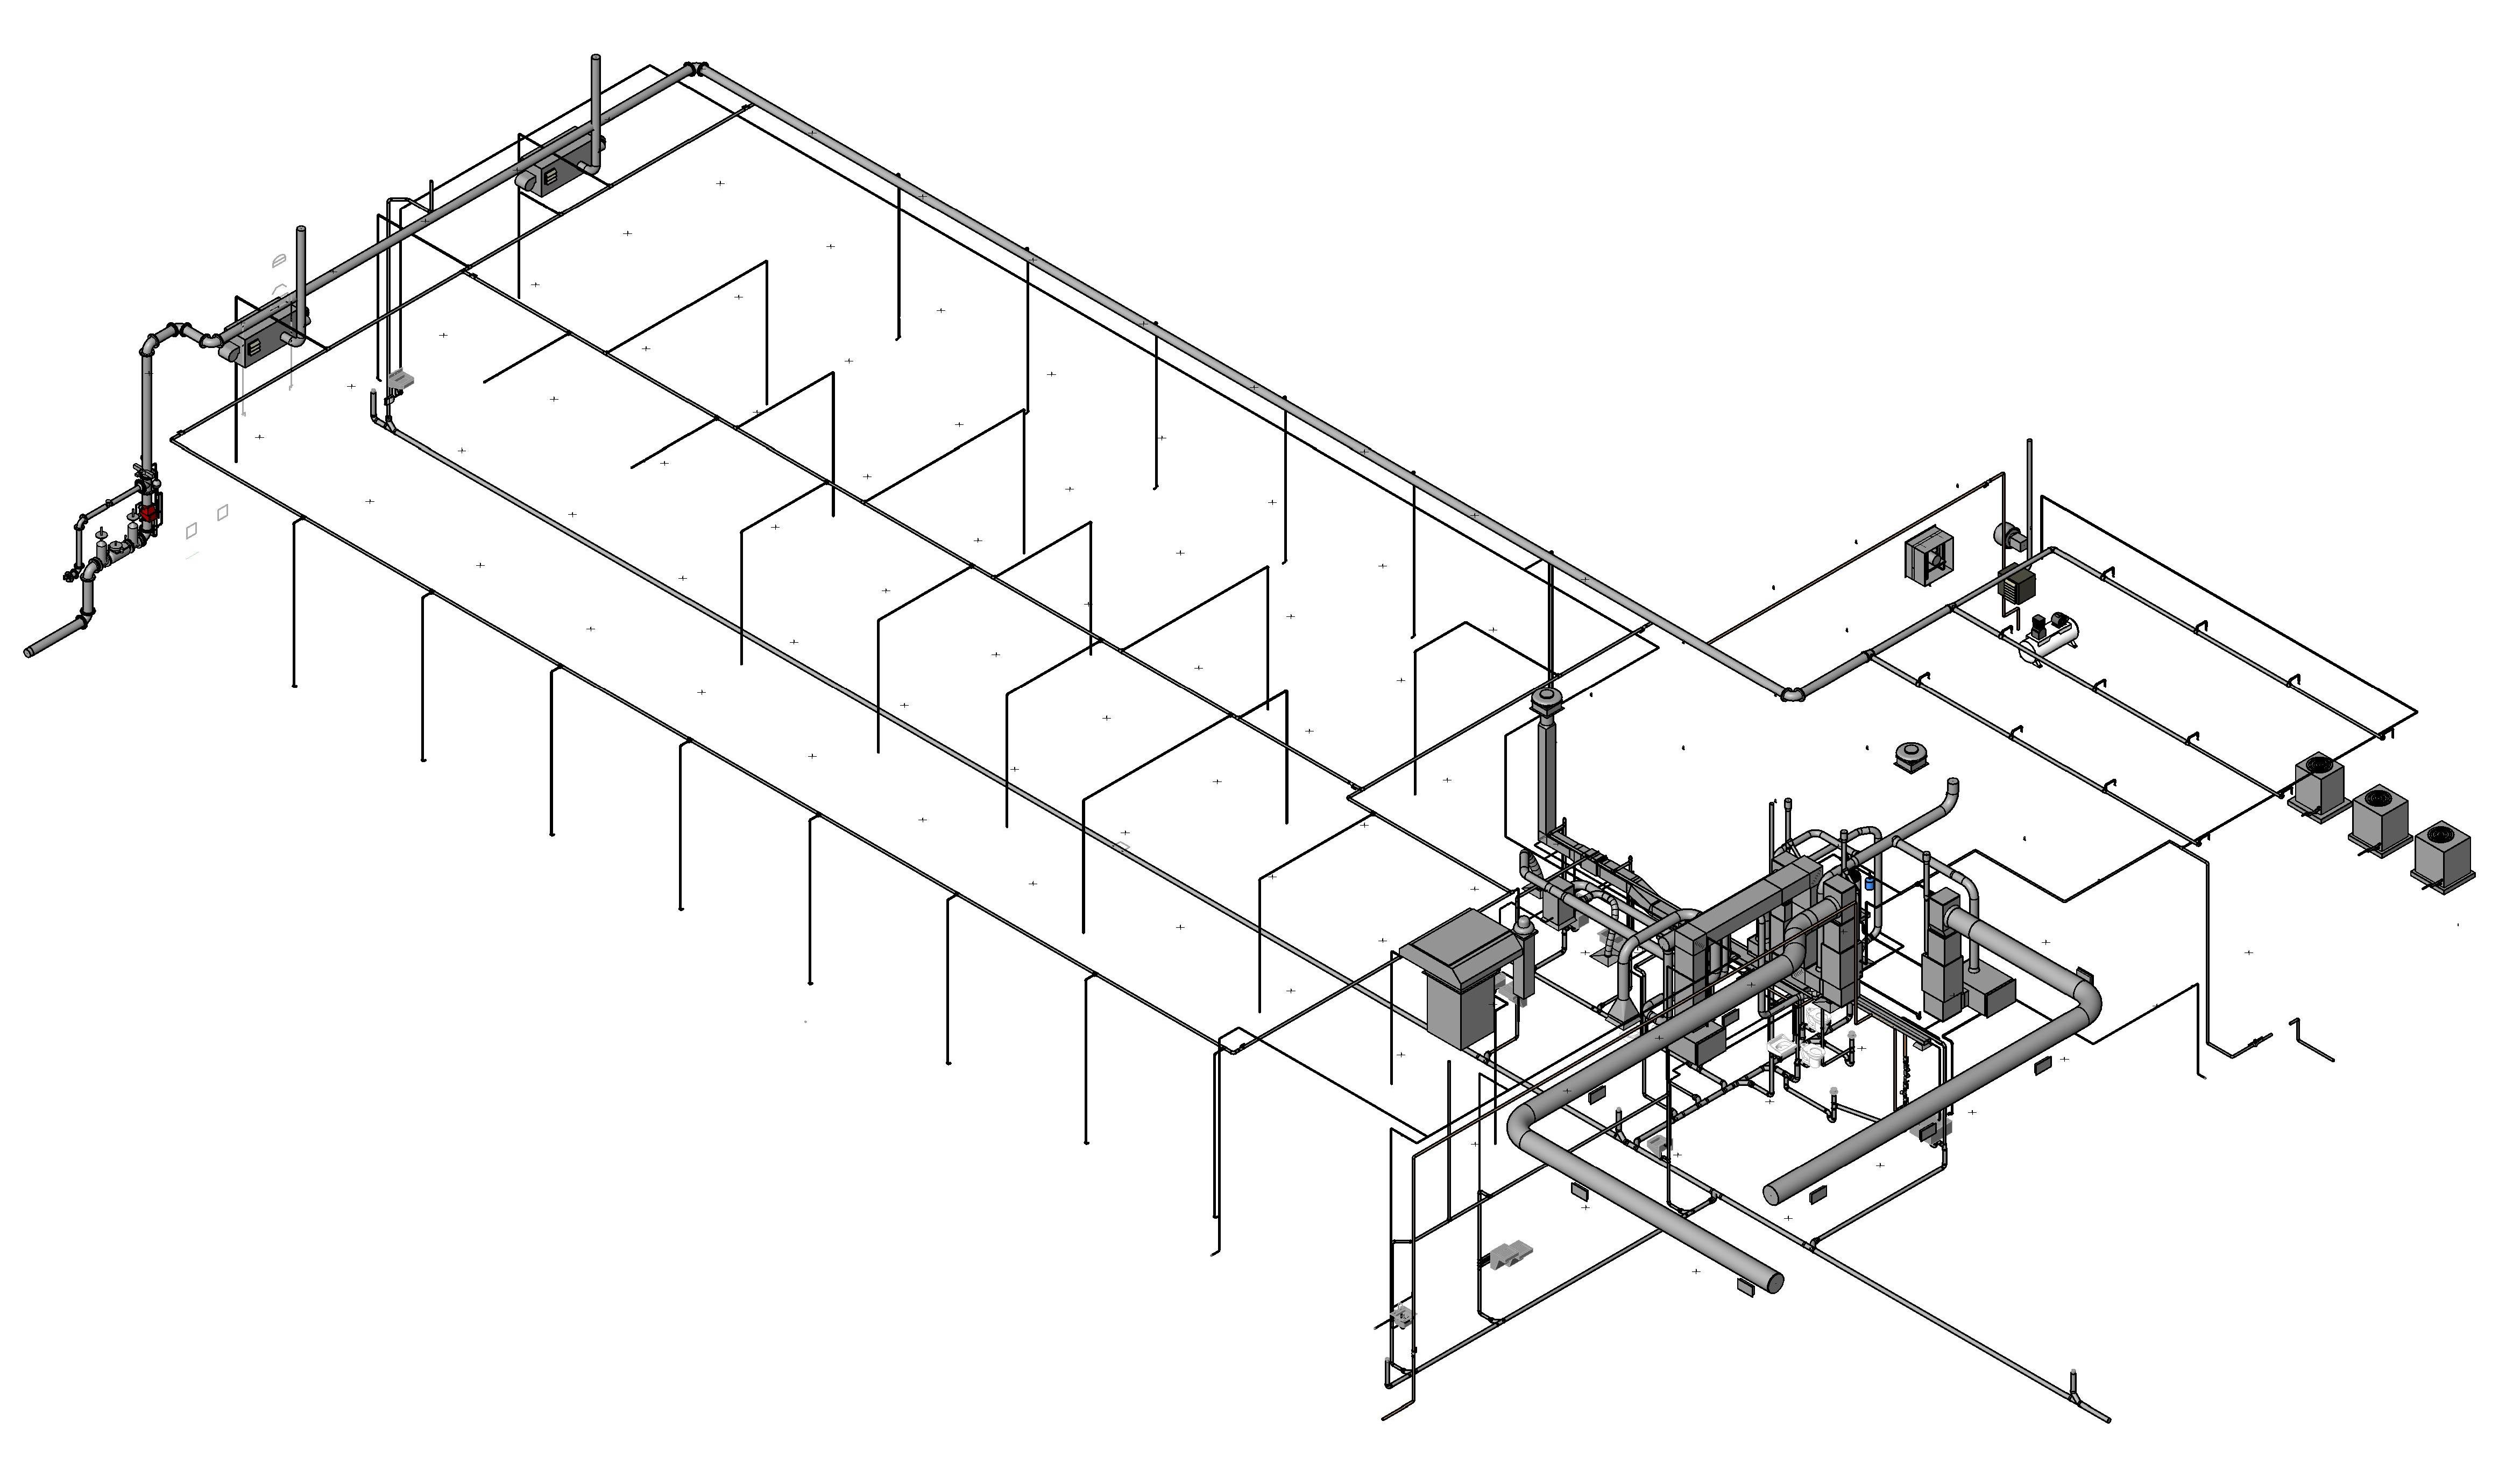 Plumbing Drawing At Free For Personal Use Of Hvac System 4684x2722 Barham Cain Mynatt Inc Revit And Building Information